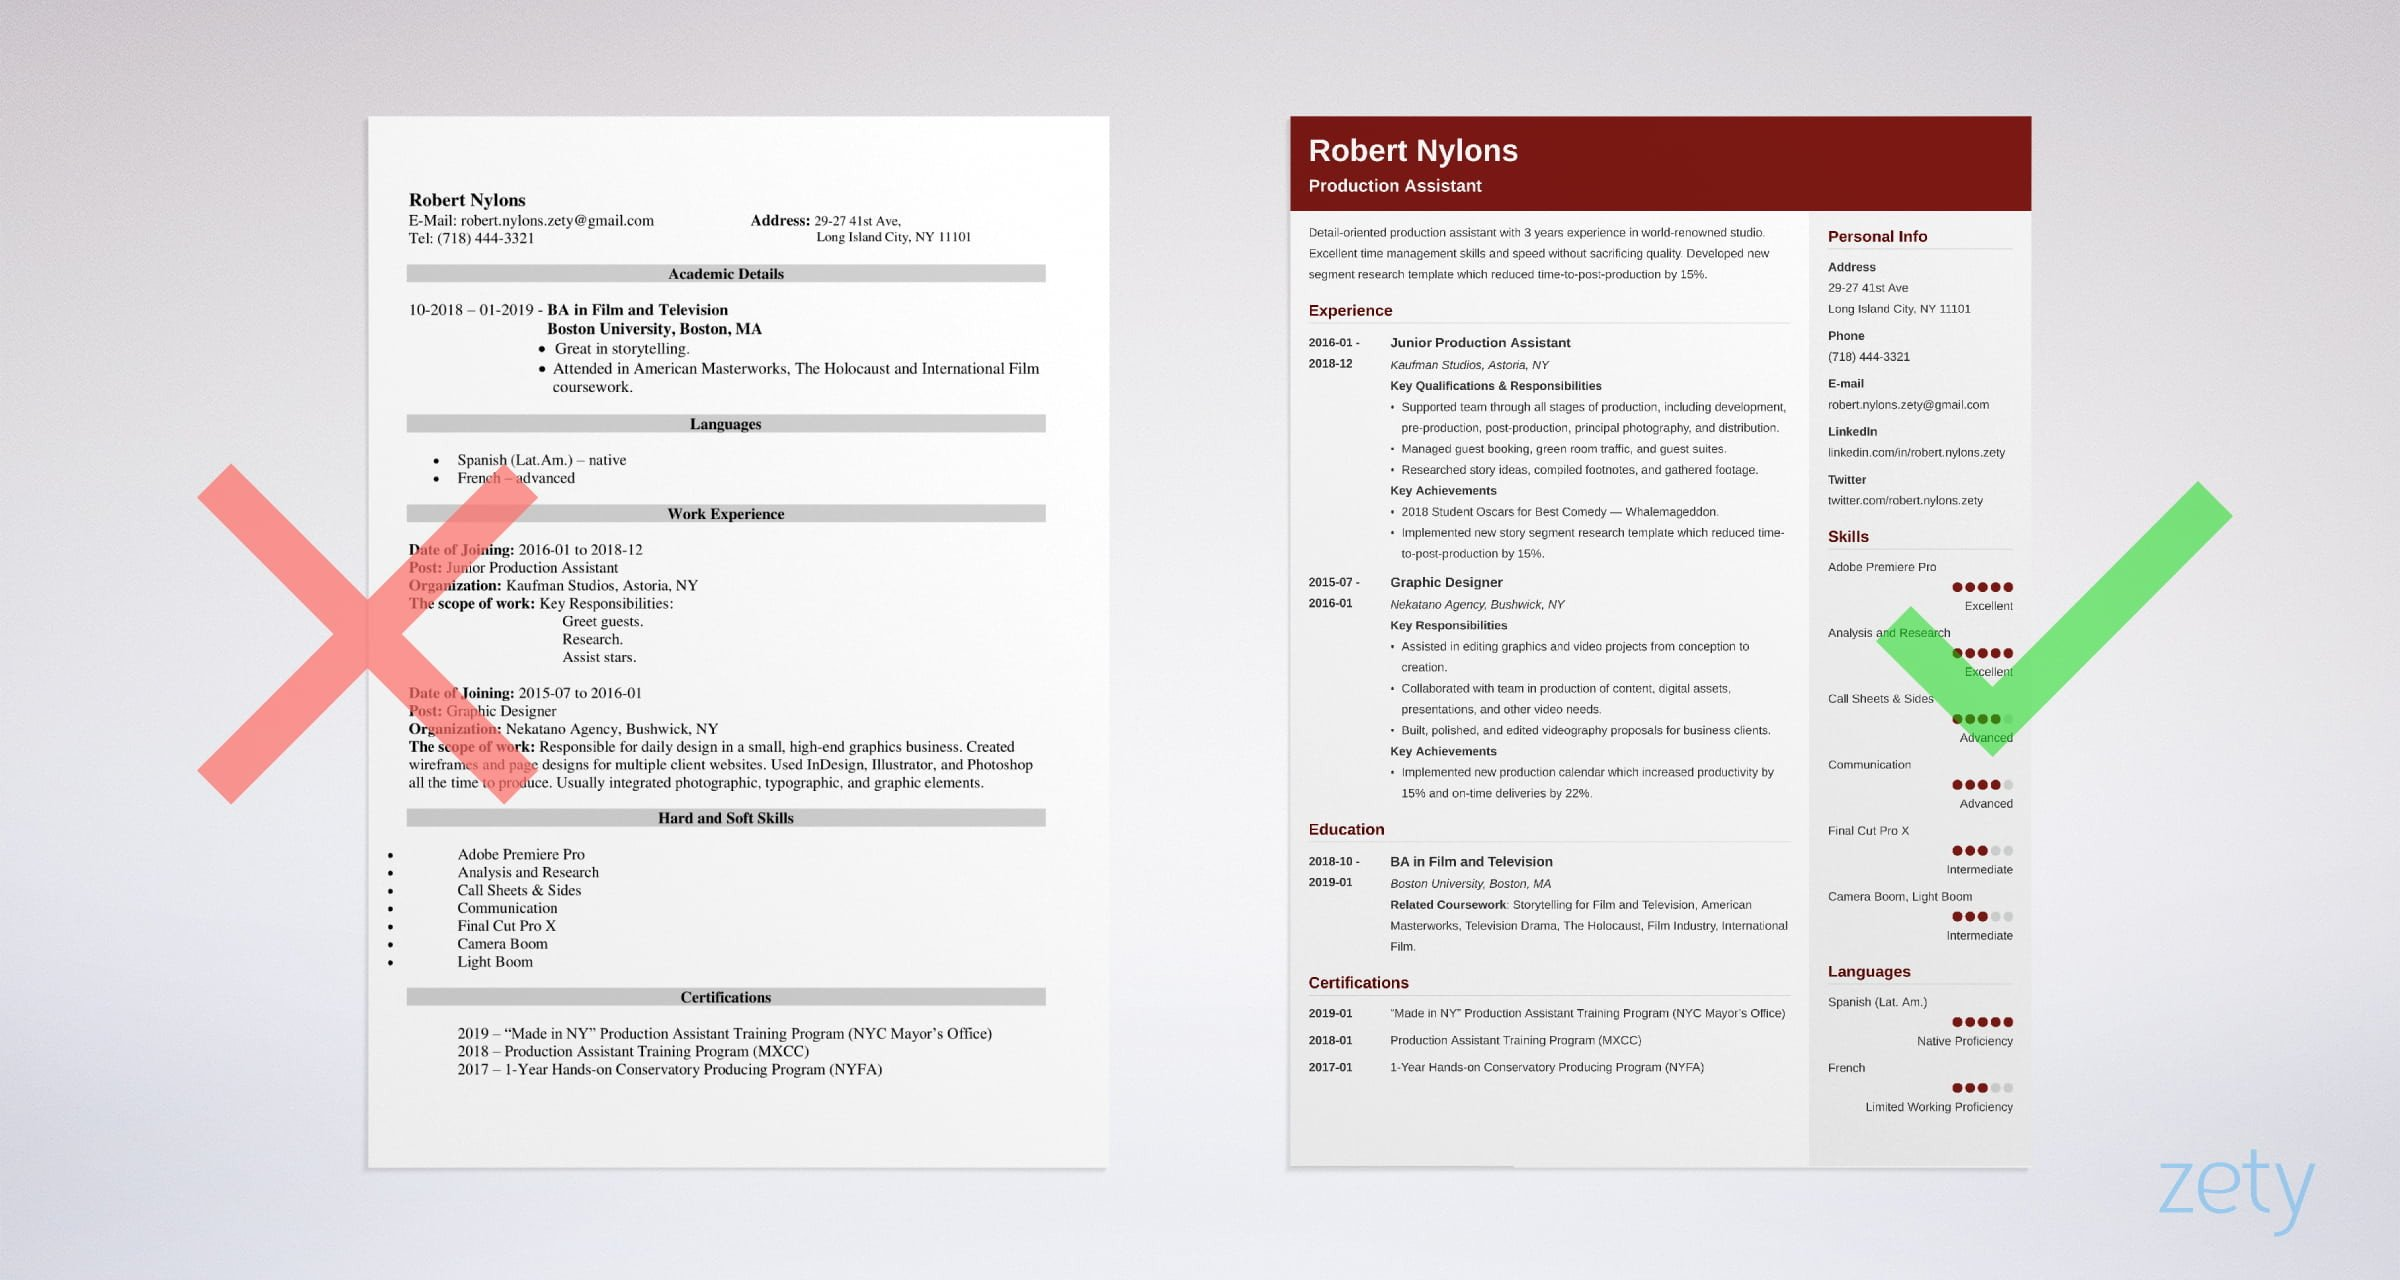 production assistant resume examples skills for film or tv crew sample example building Resume Film Crew Resume Sample